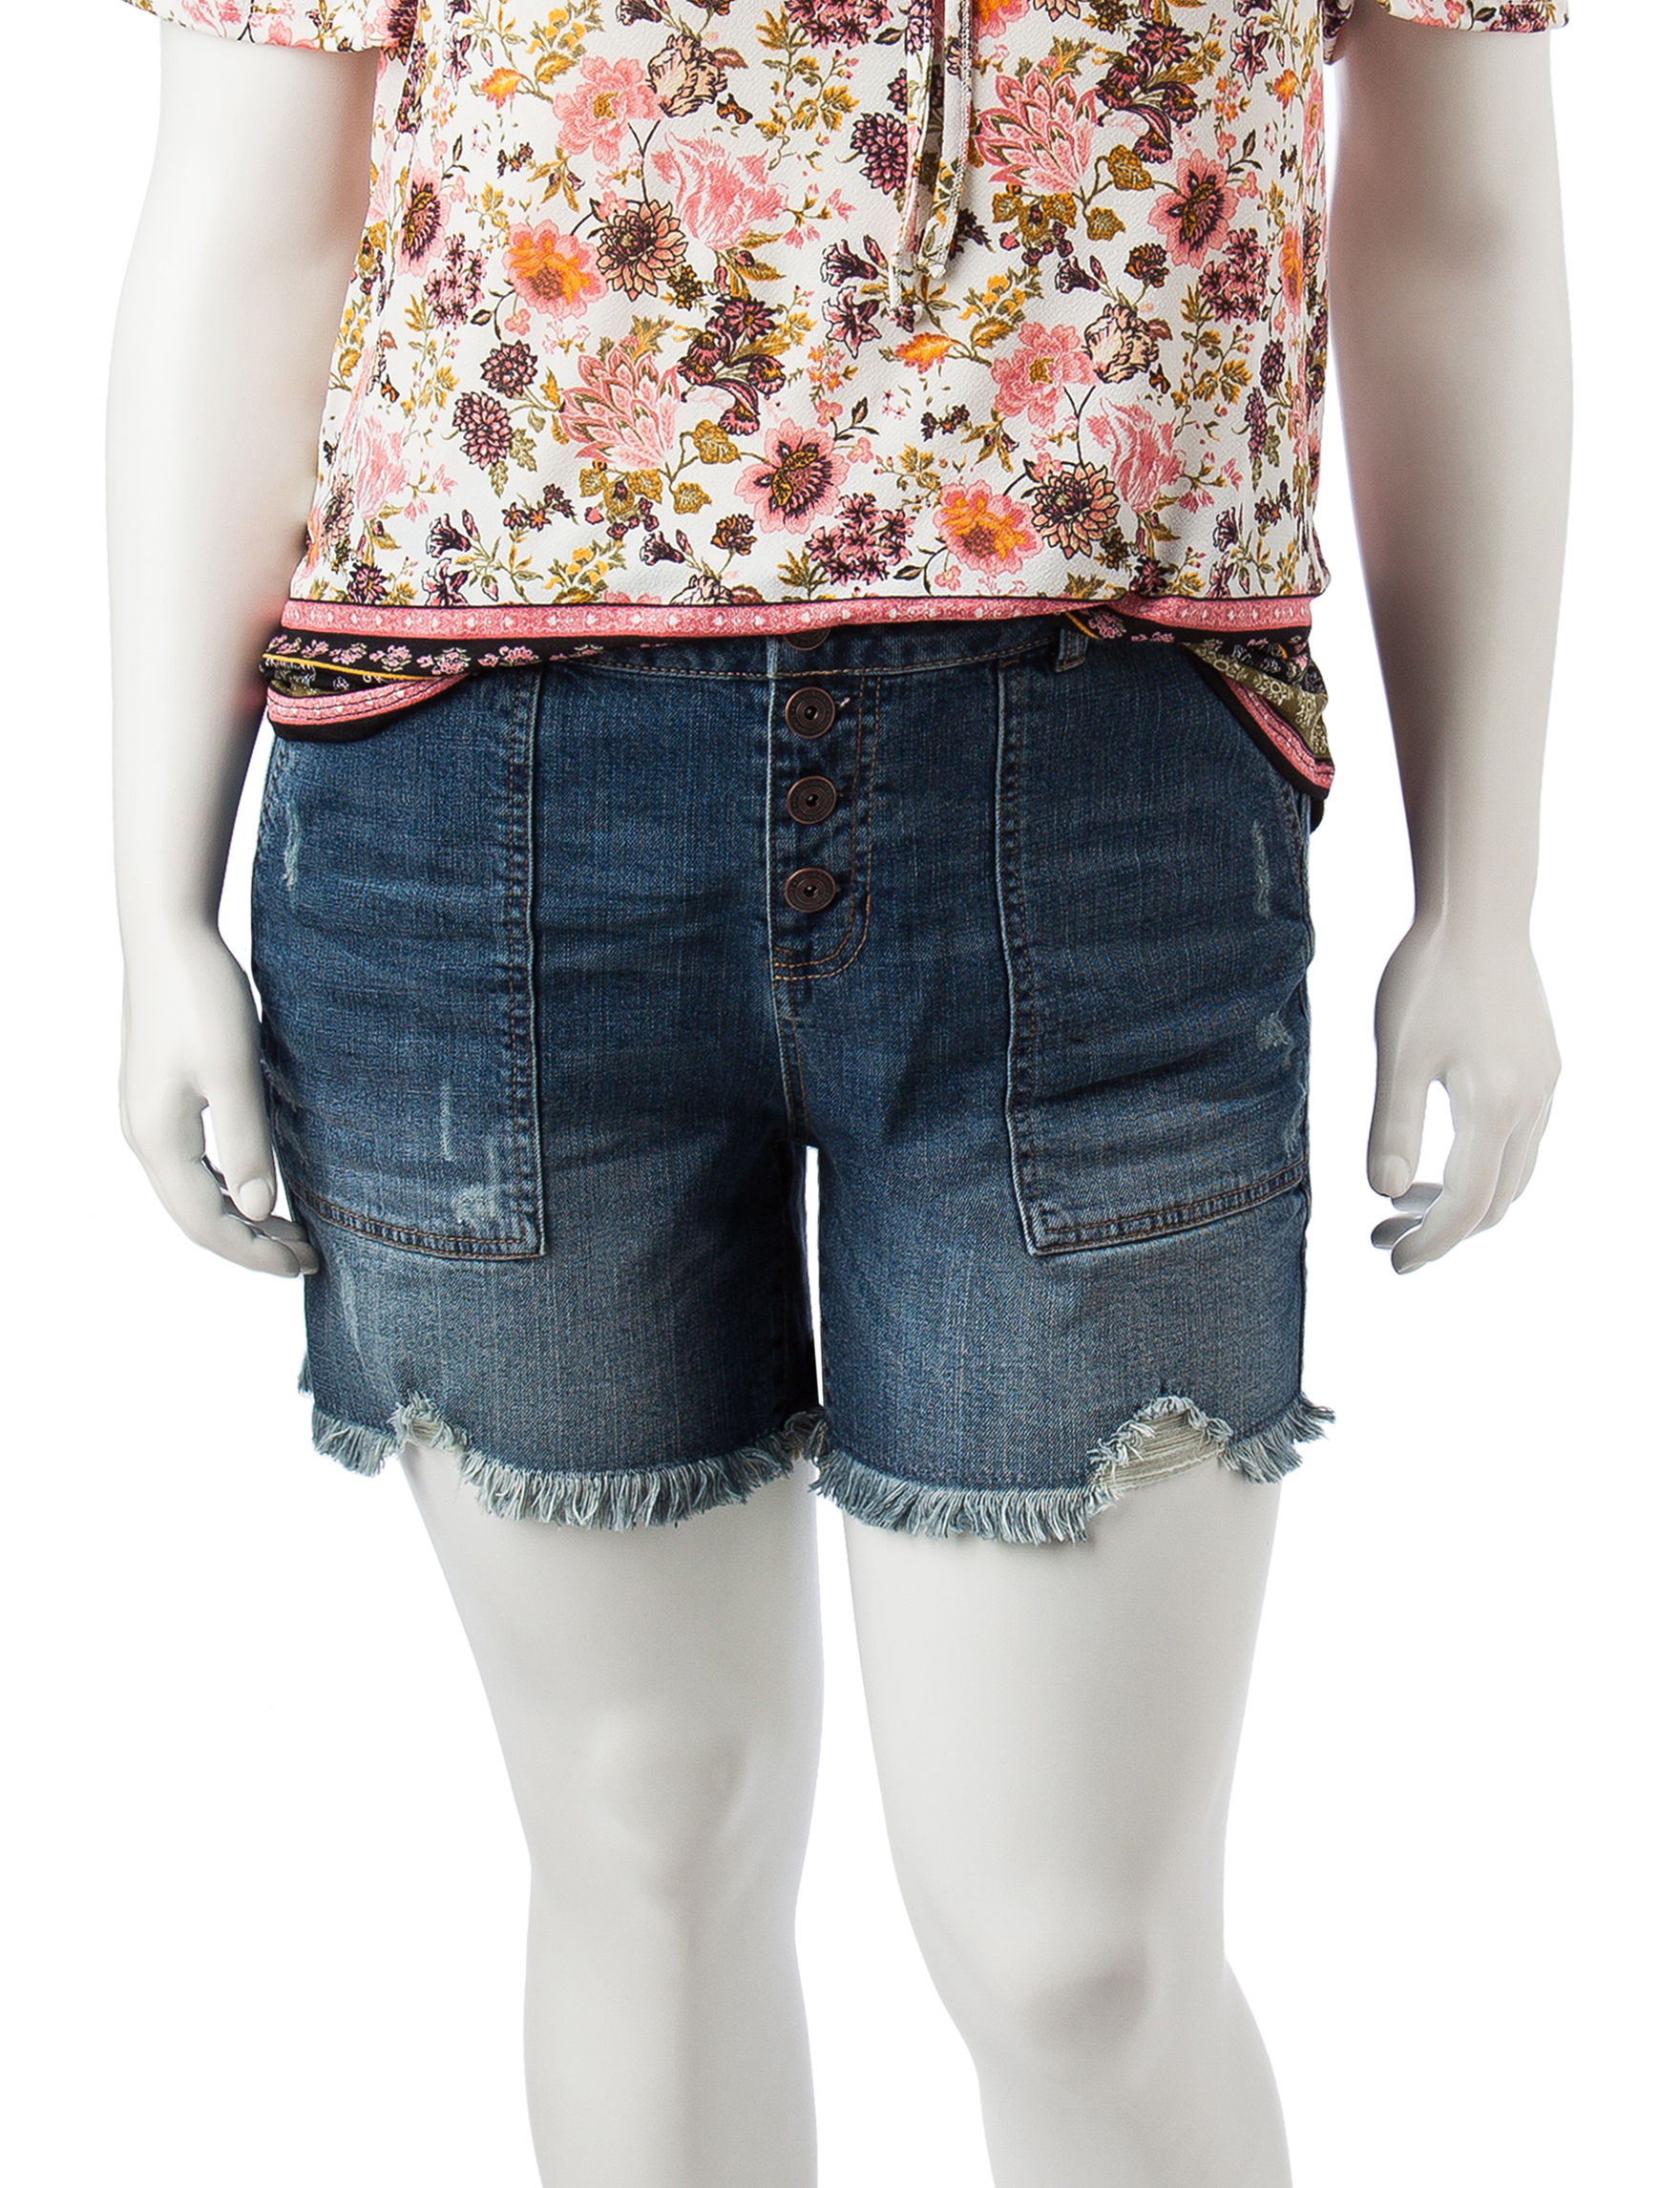 Hippie Laundry Blue Denim Shorts